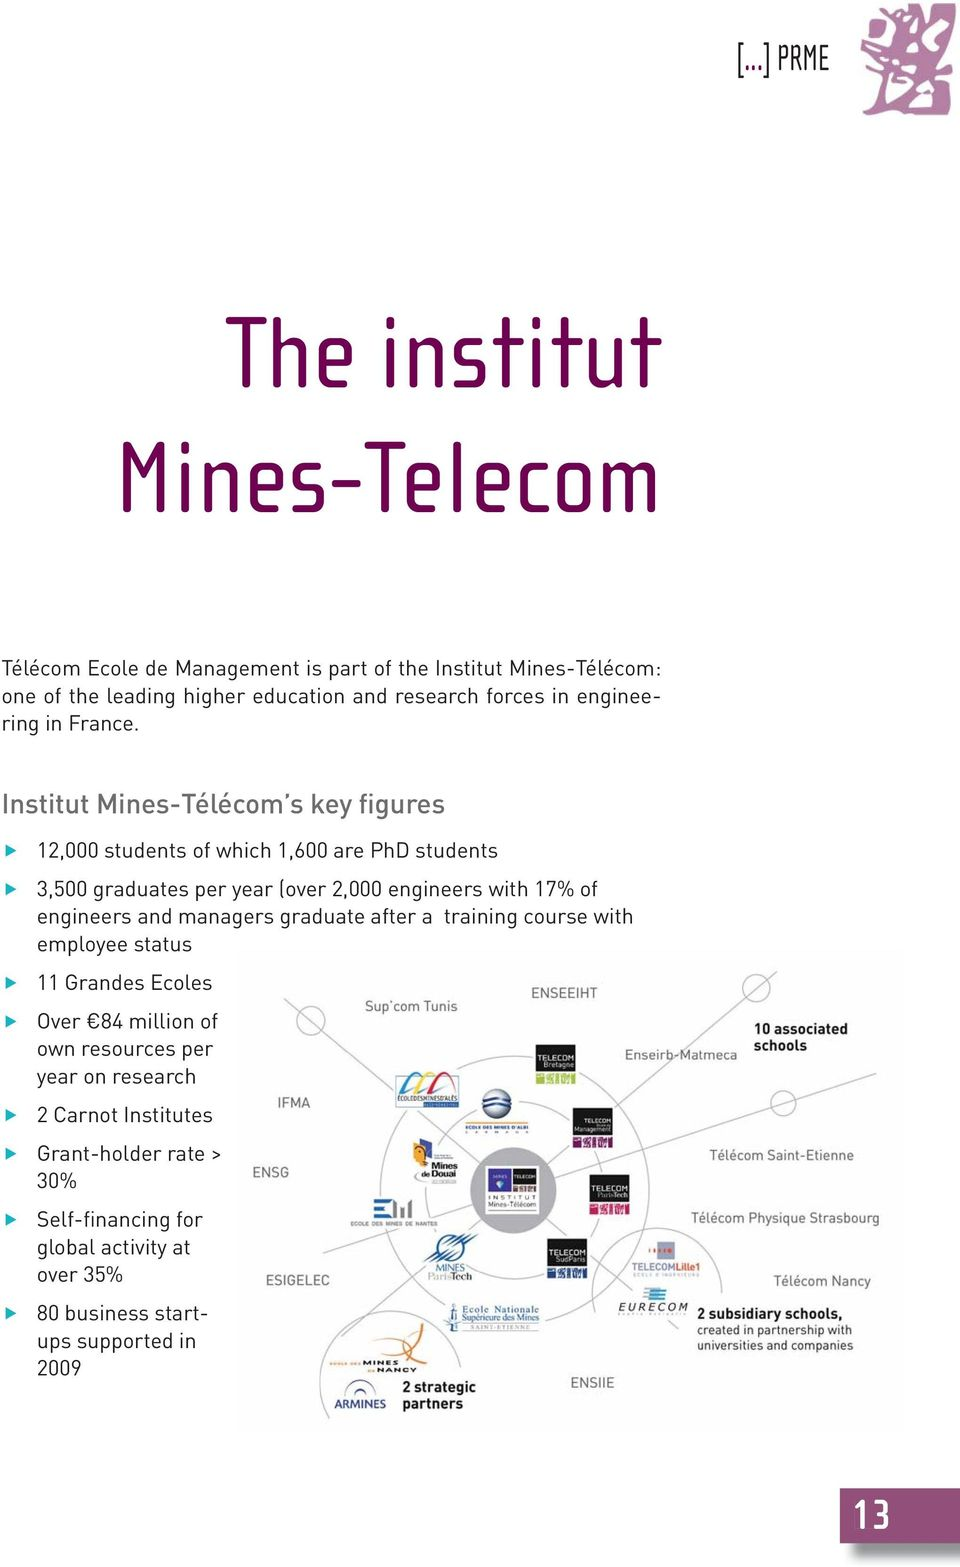 Institut Mines-Télécom s key figures 12,000 students of which 1,600 are PhD students 3,500 graduates per year (over 2,000 engineers with 17% of